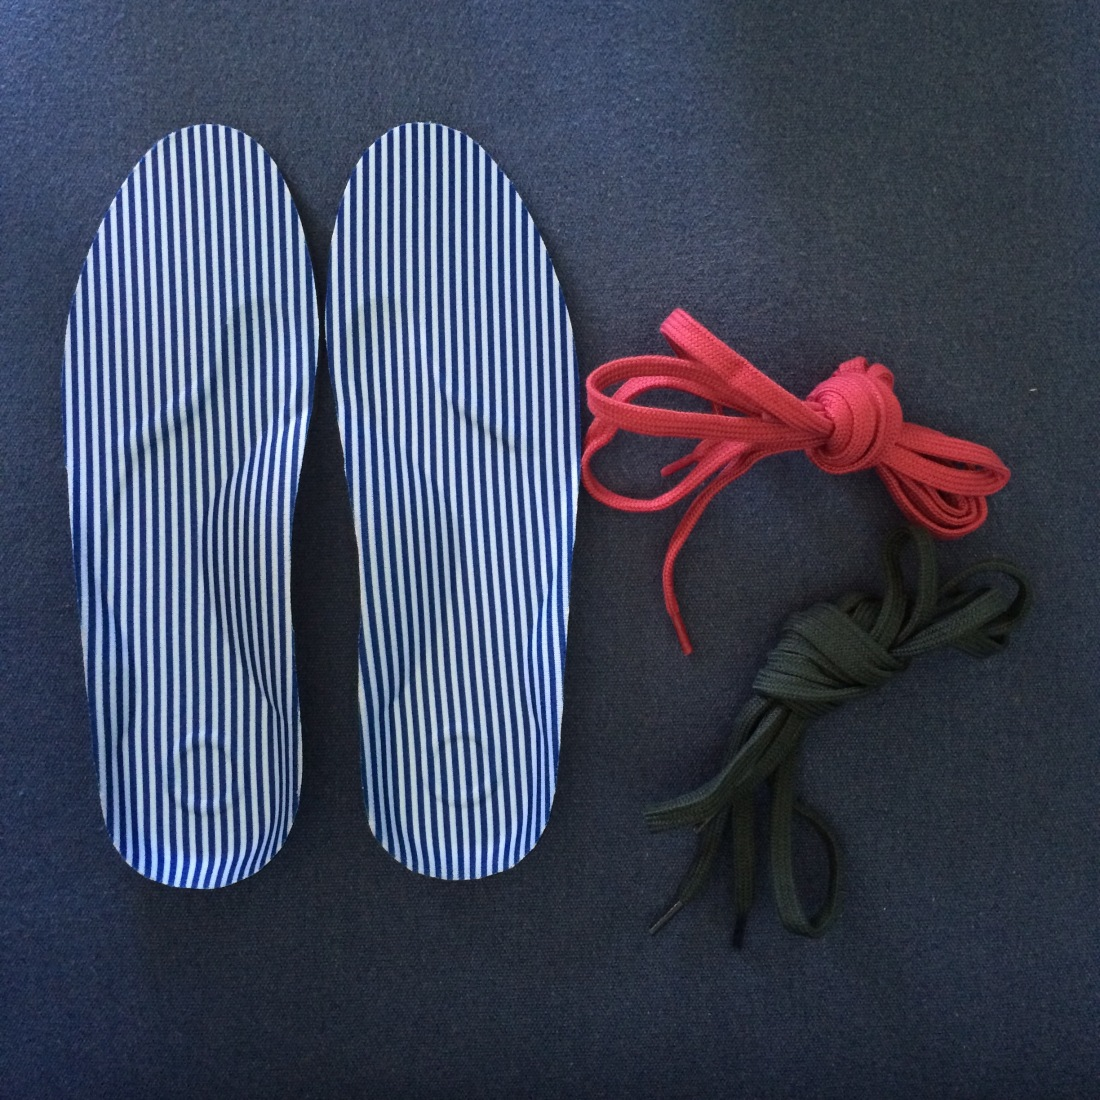 MUJI insole and laces